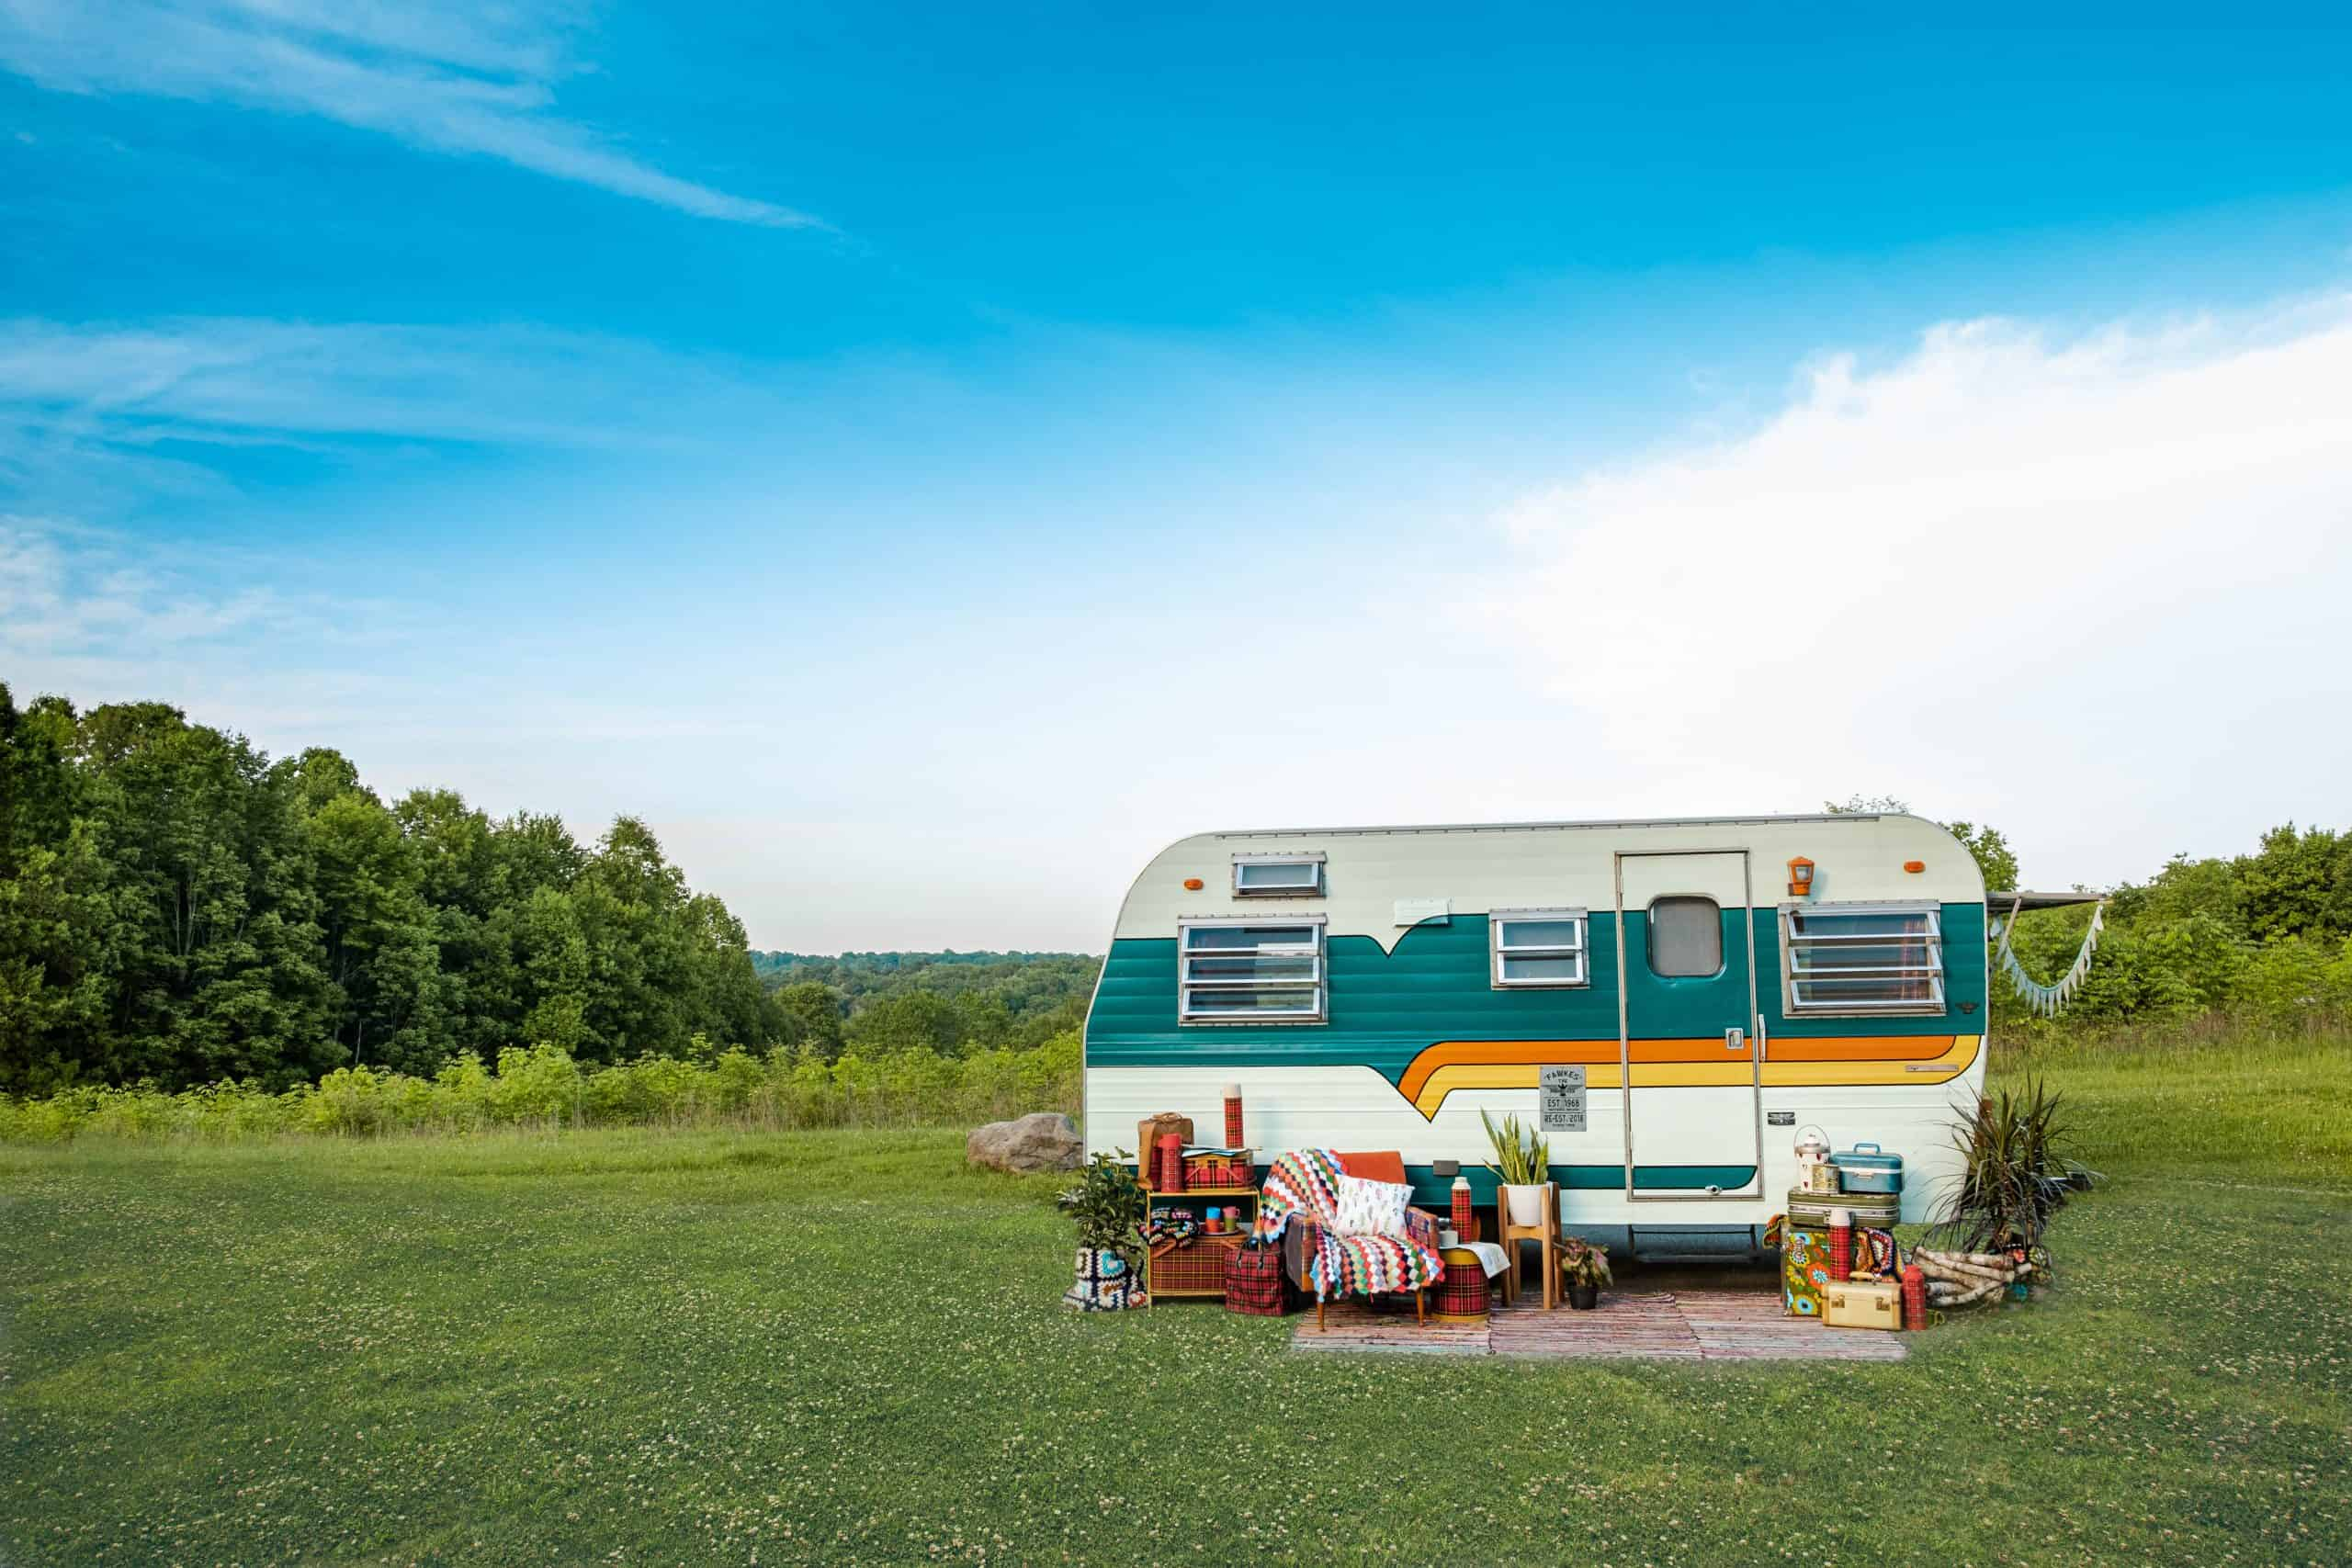 travel trailer with outdoor patio set up